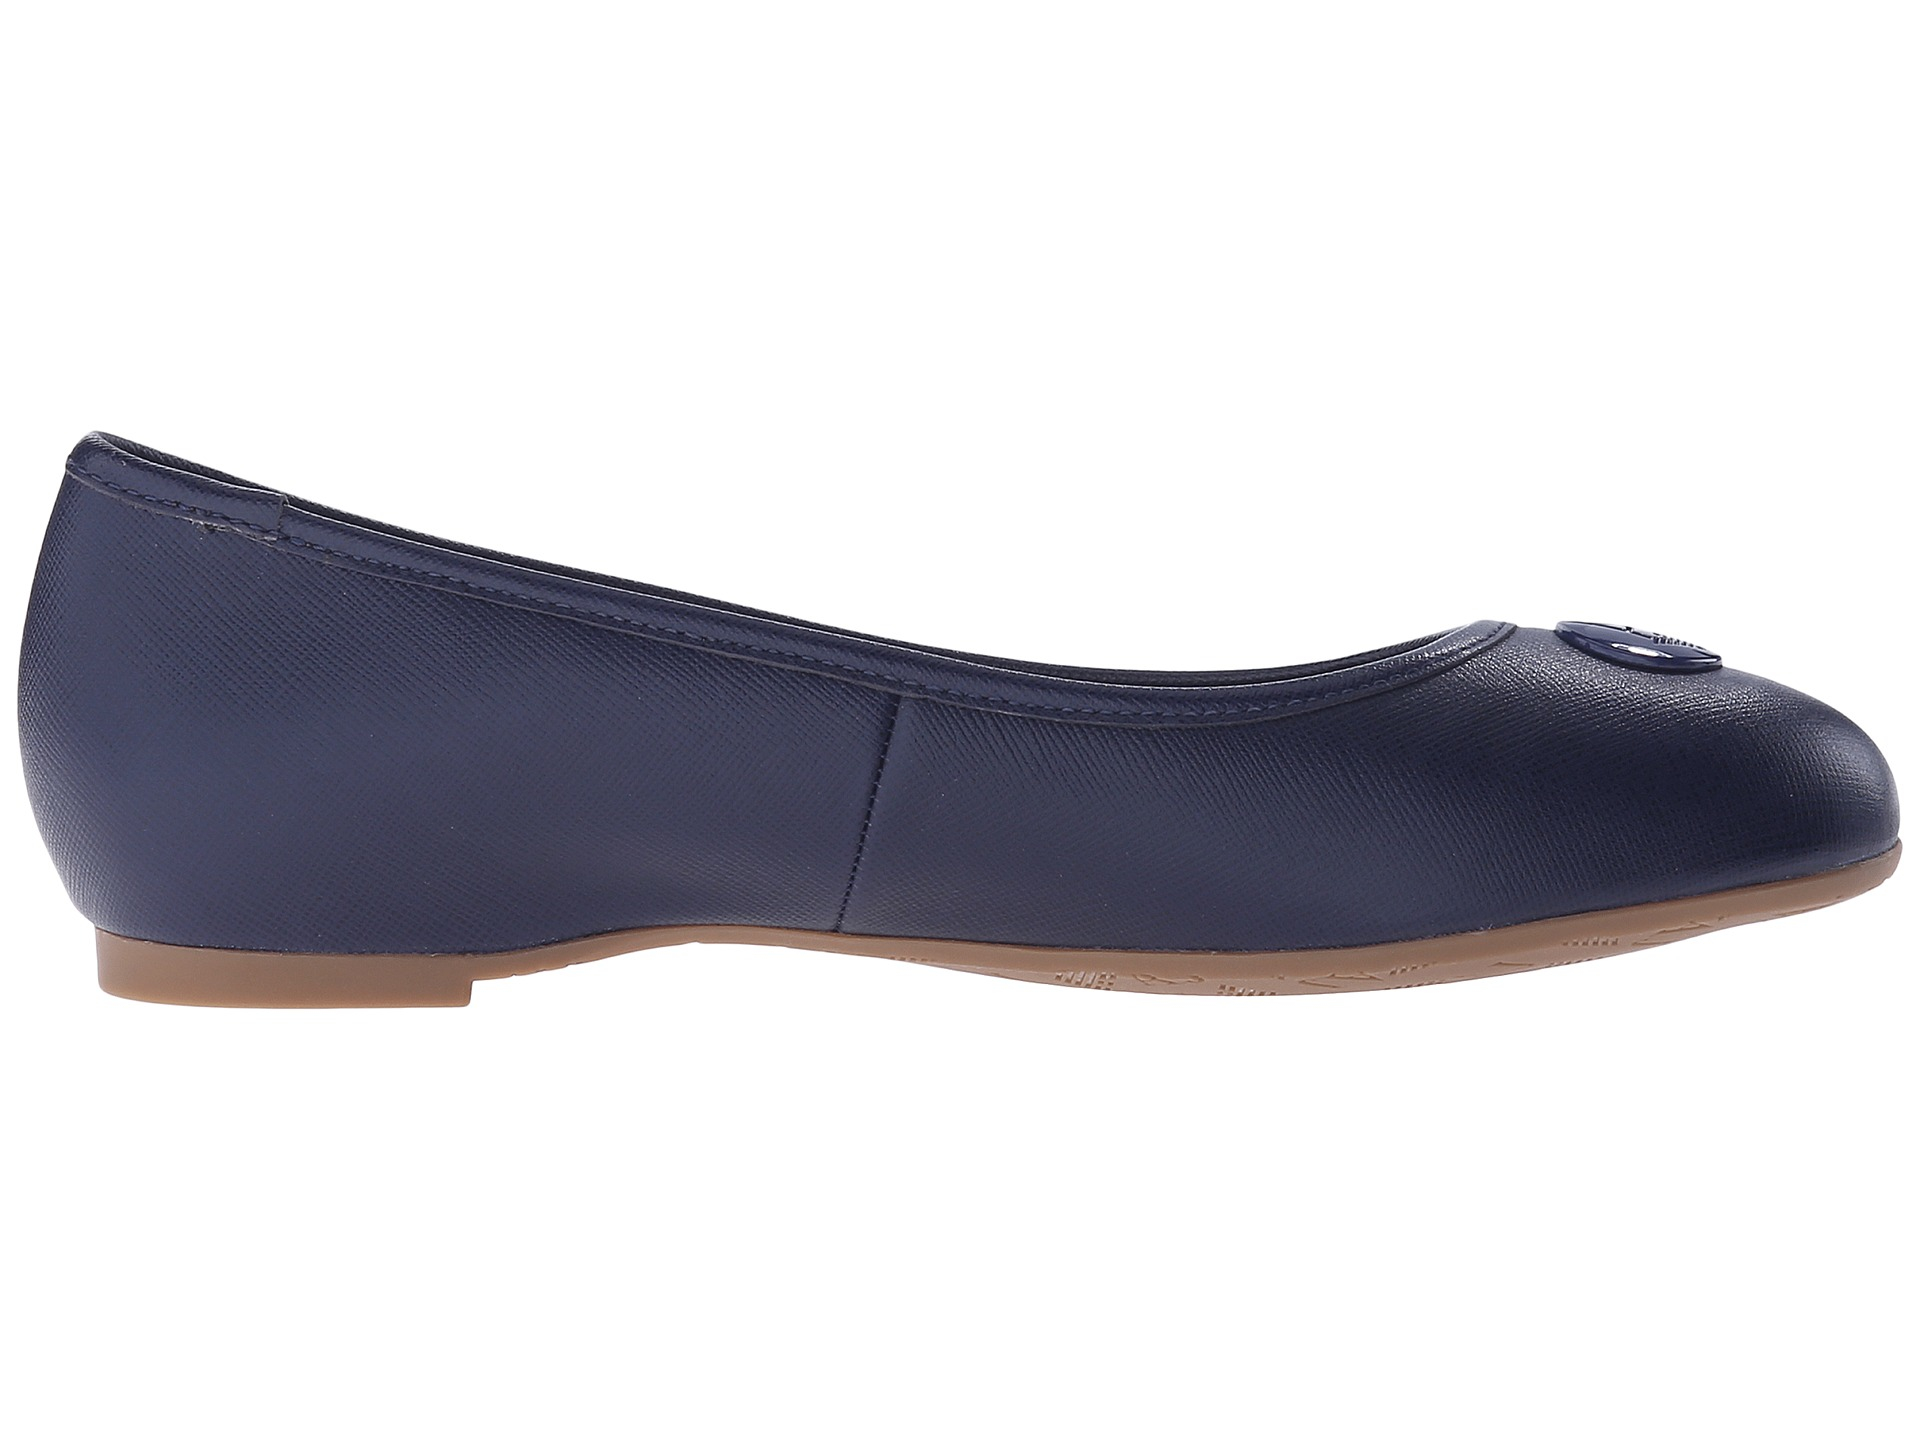 Armani Leather Ballet Flats